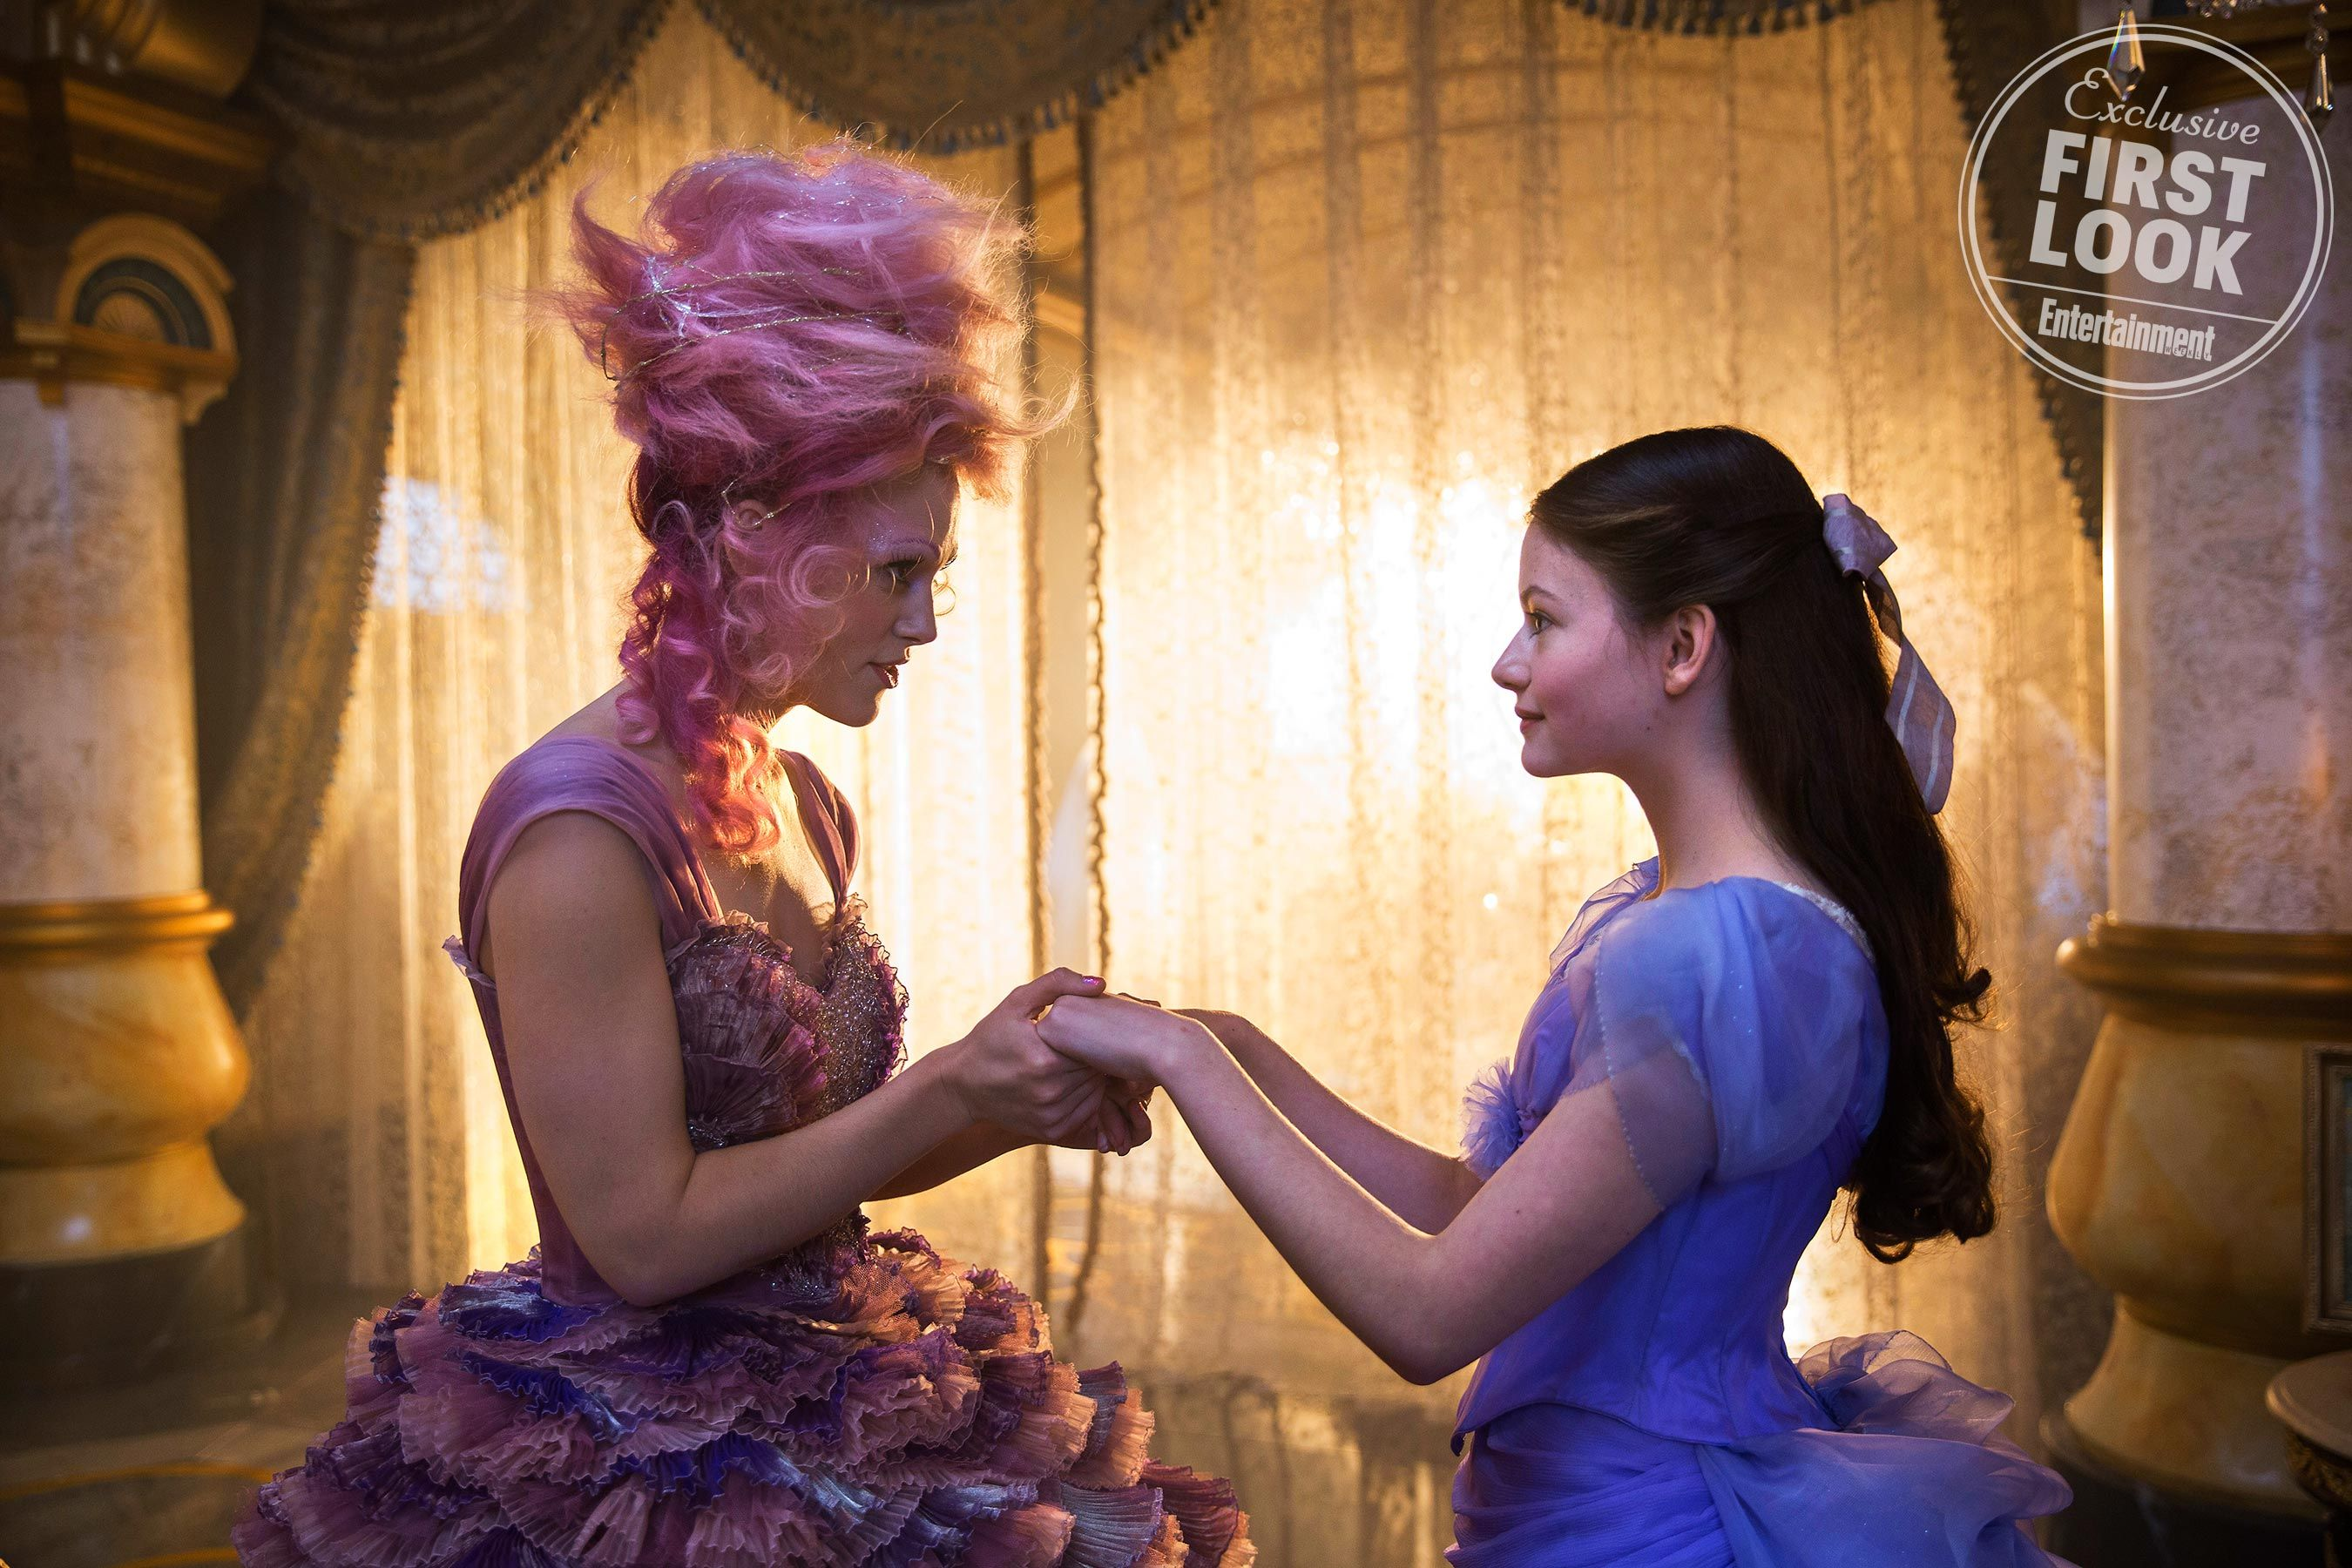 Keira Knightley is a pink Sugar Plum Fairy in 'The Nutcracker and the Four Realms' first look